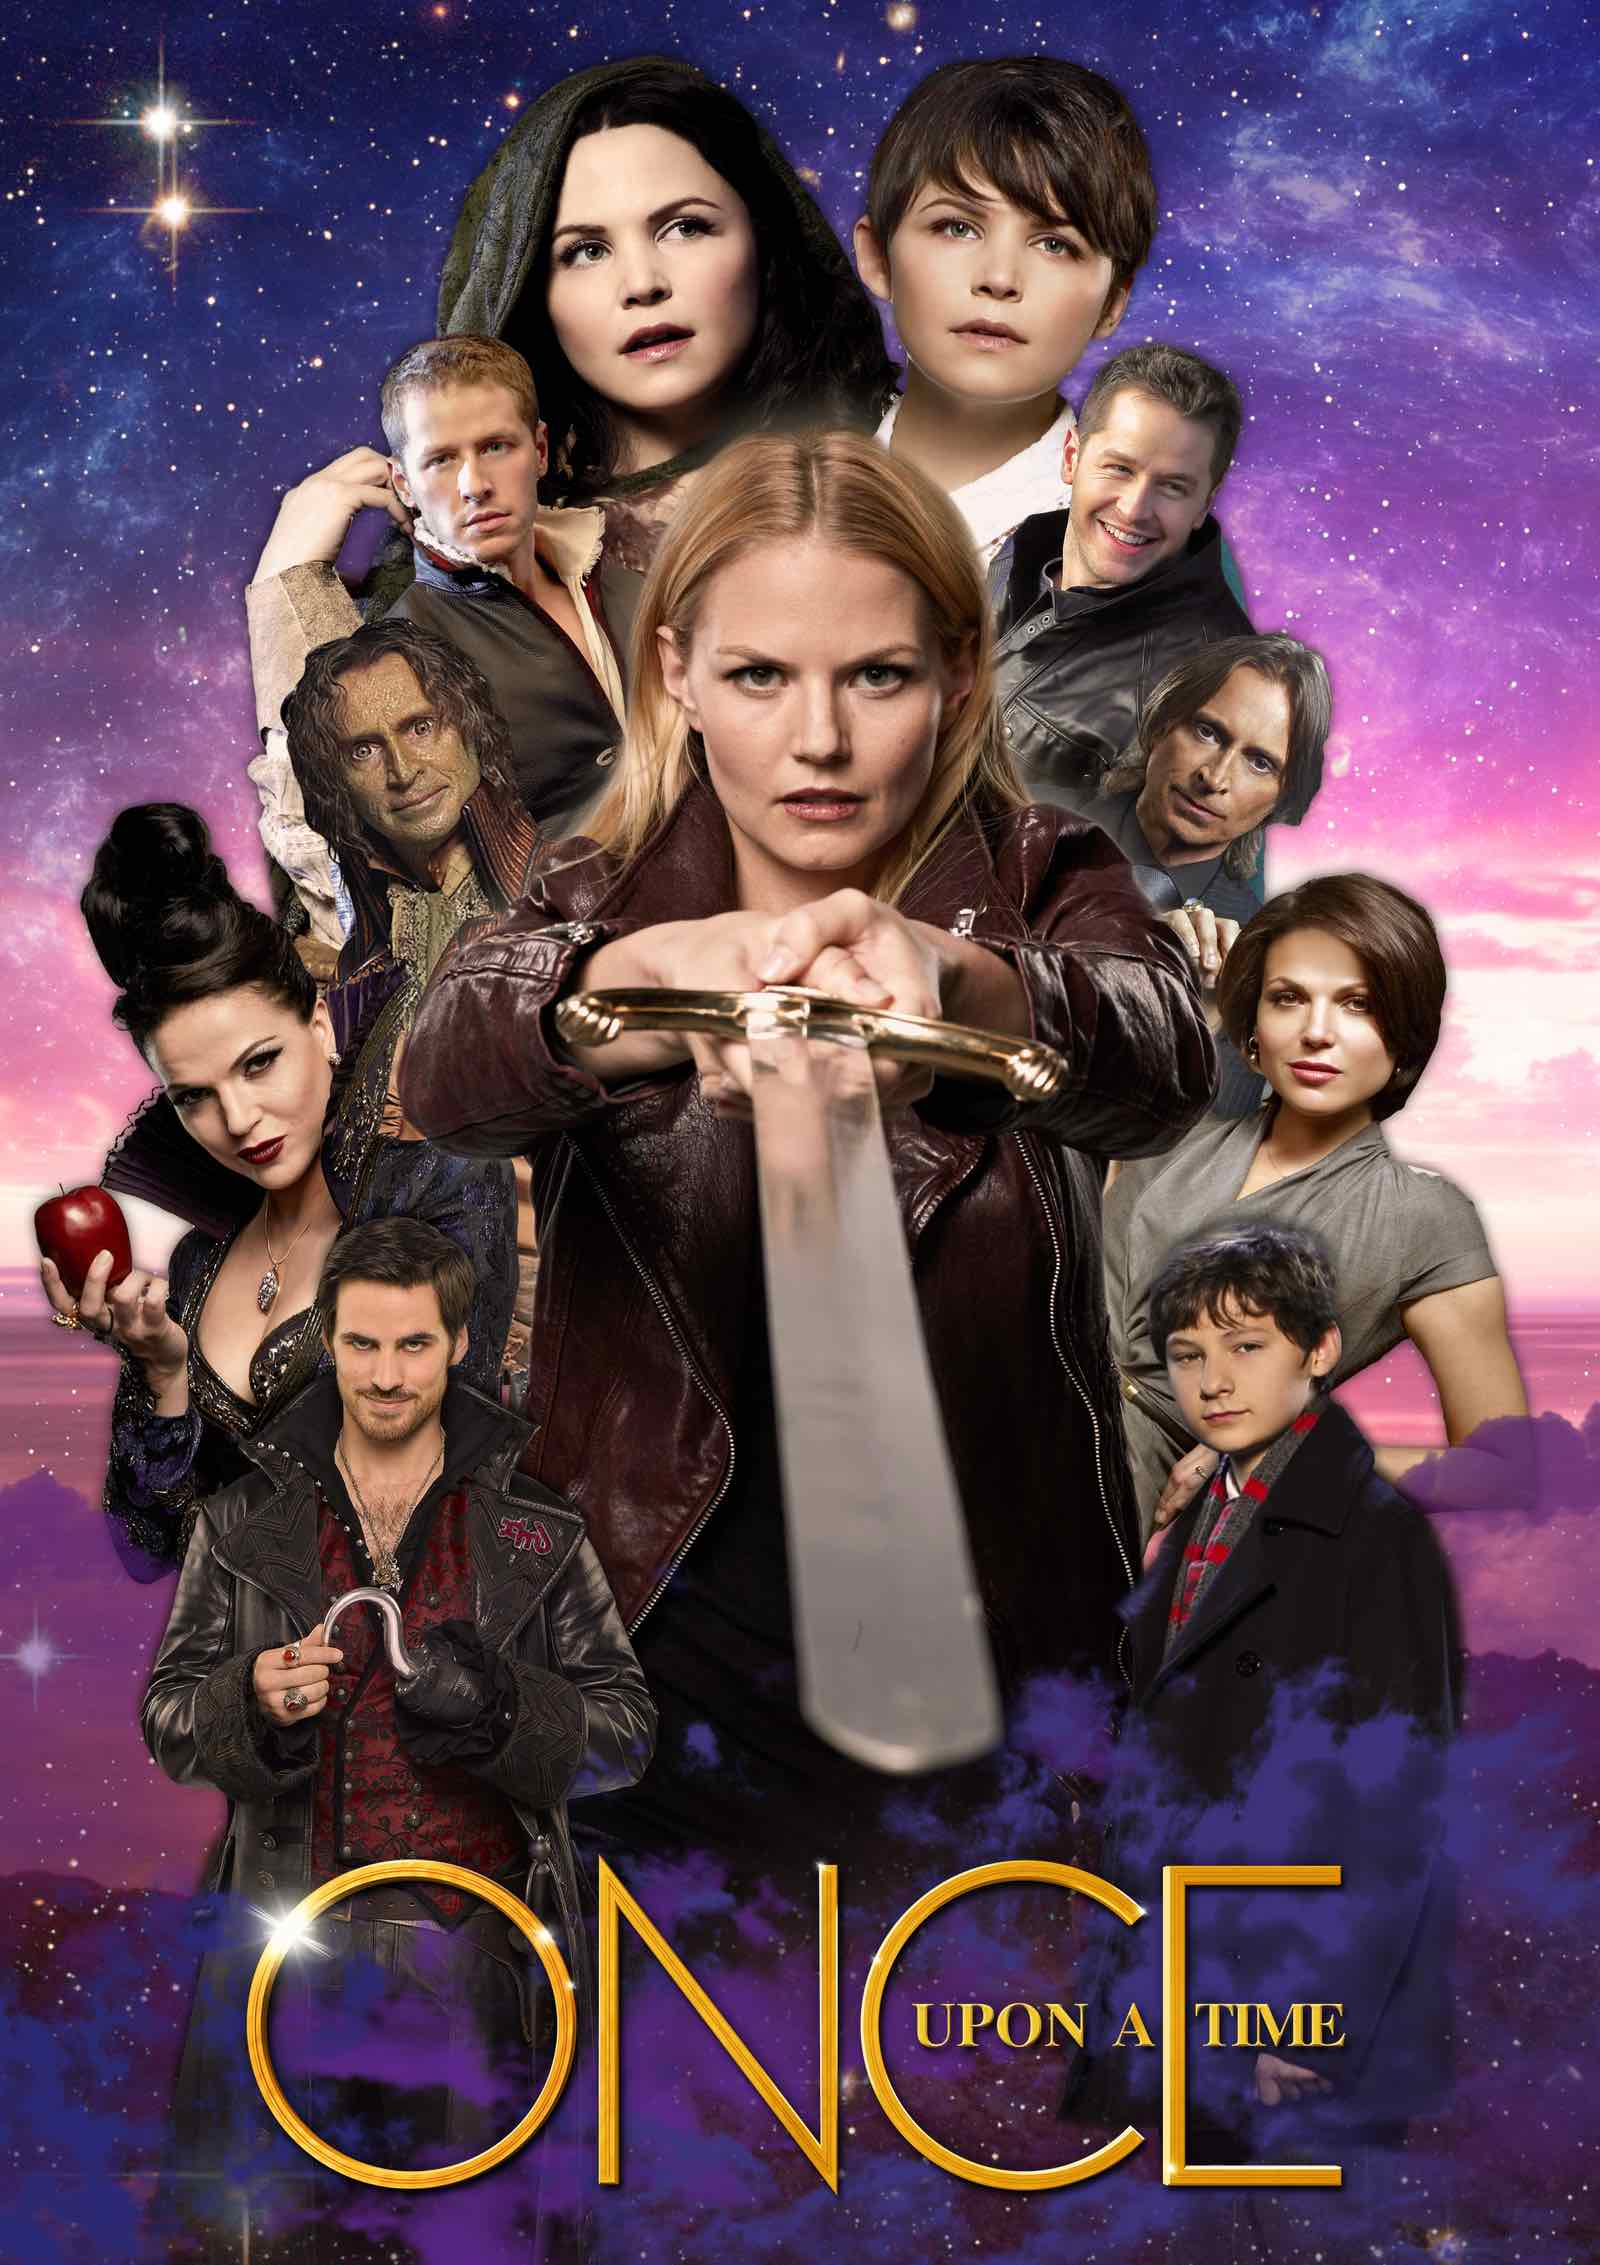 Attori principali del cast di Once Upon a Time